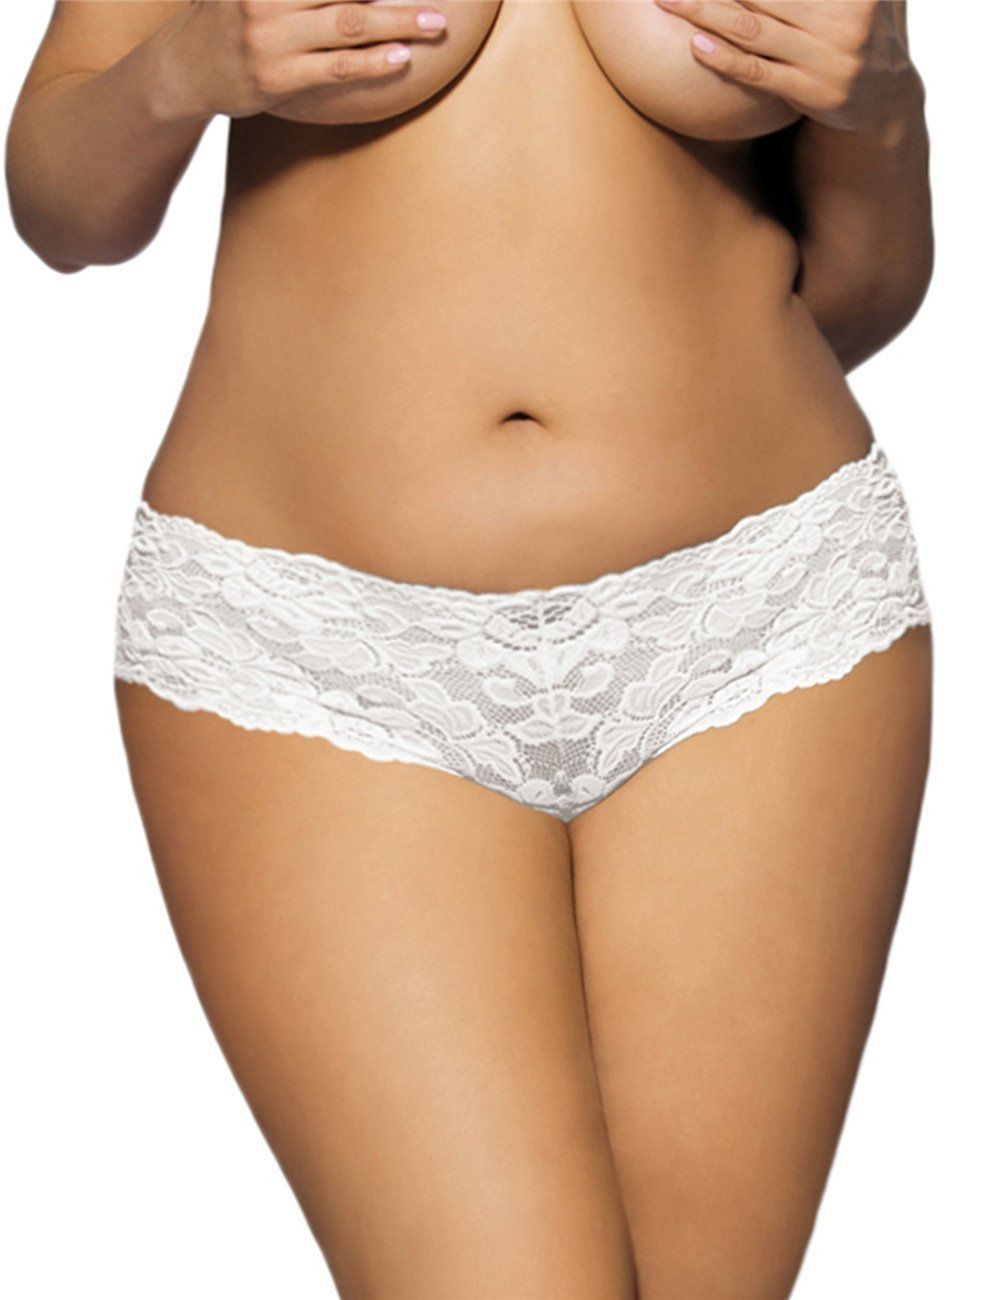 plus size Lingerie White / 3XL / AUS 18 Tamie Lace Briefs - White